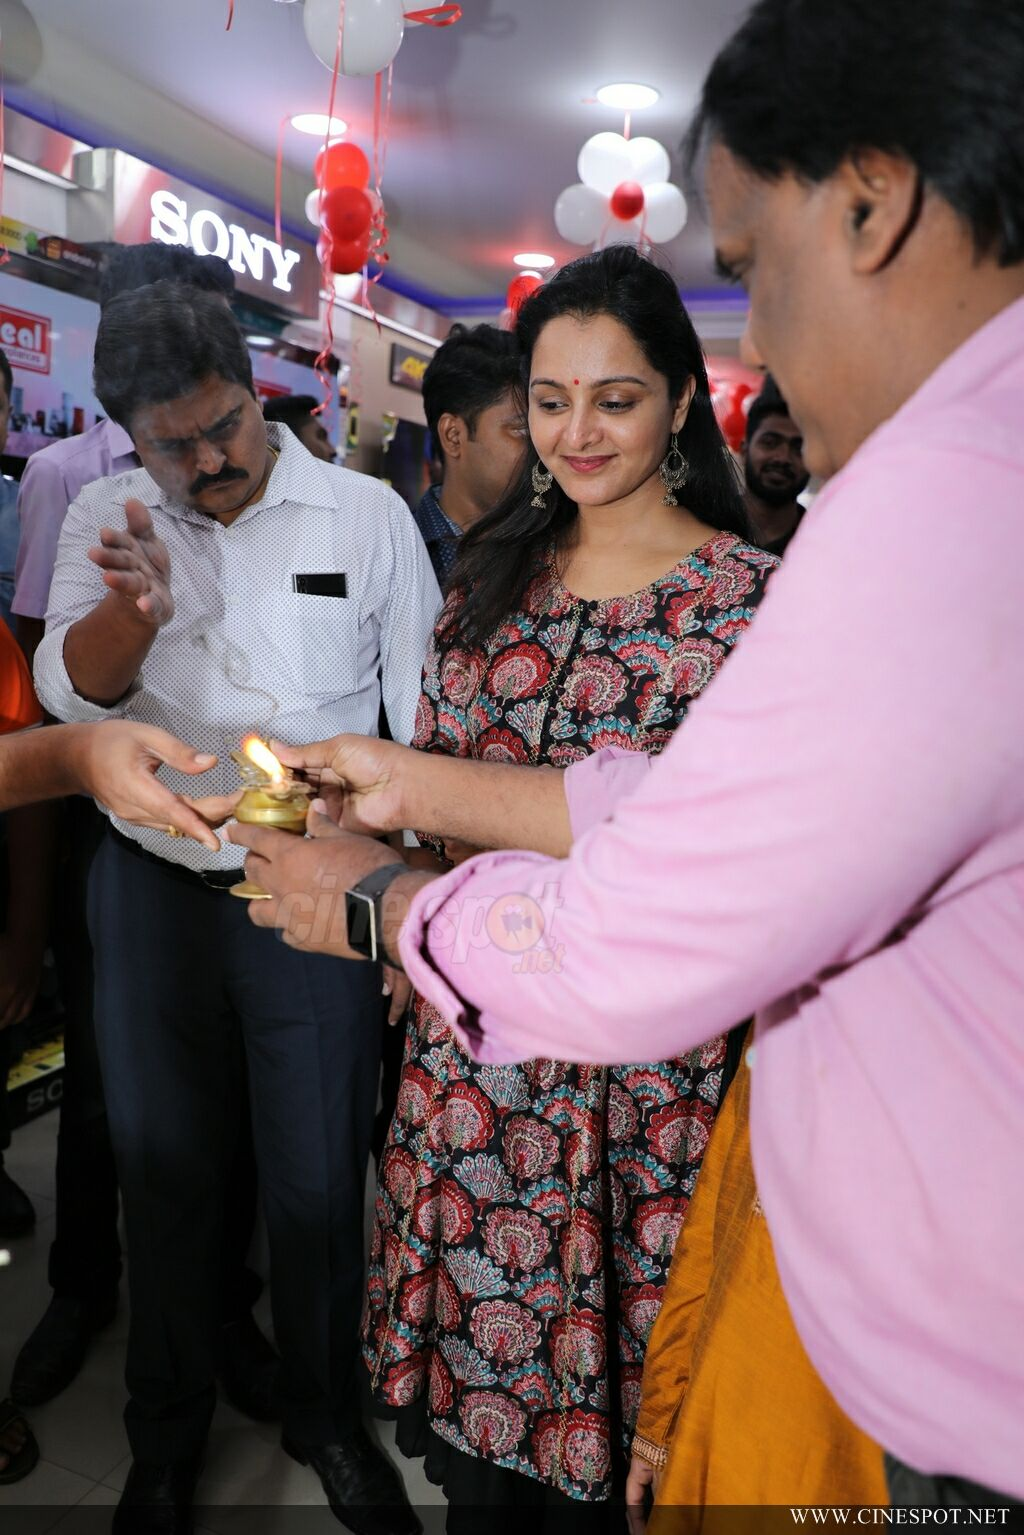 Manju Warrier At Sony Showroom Inauguration (13)